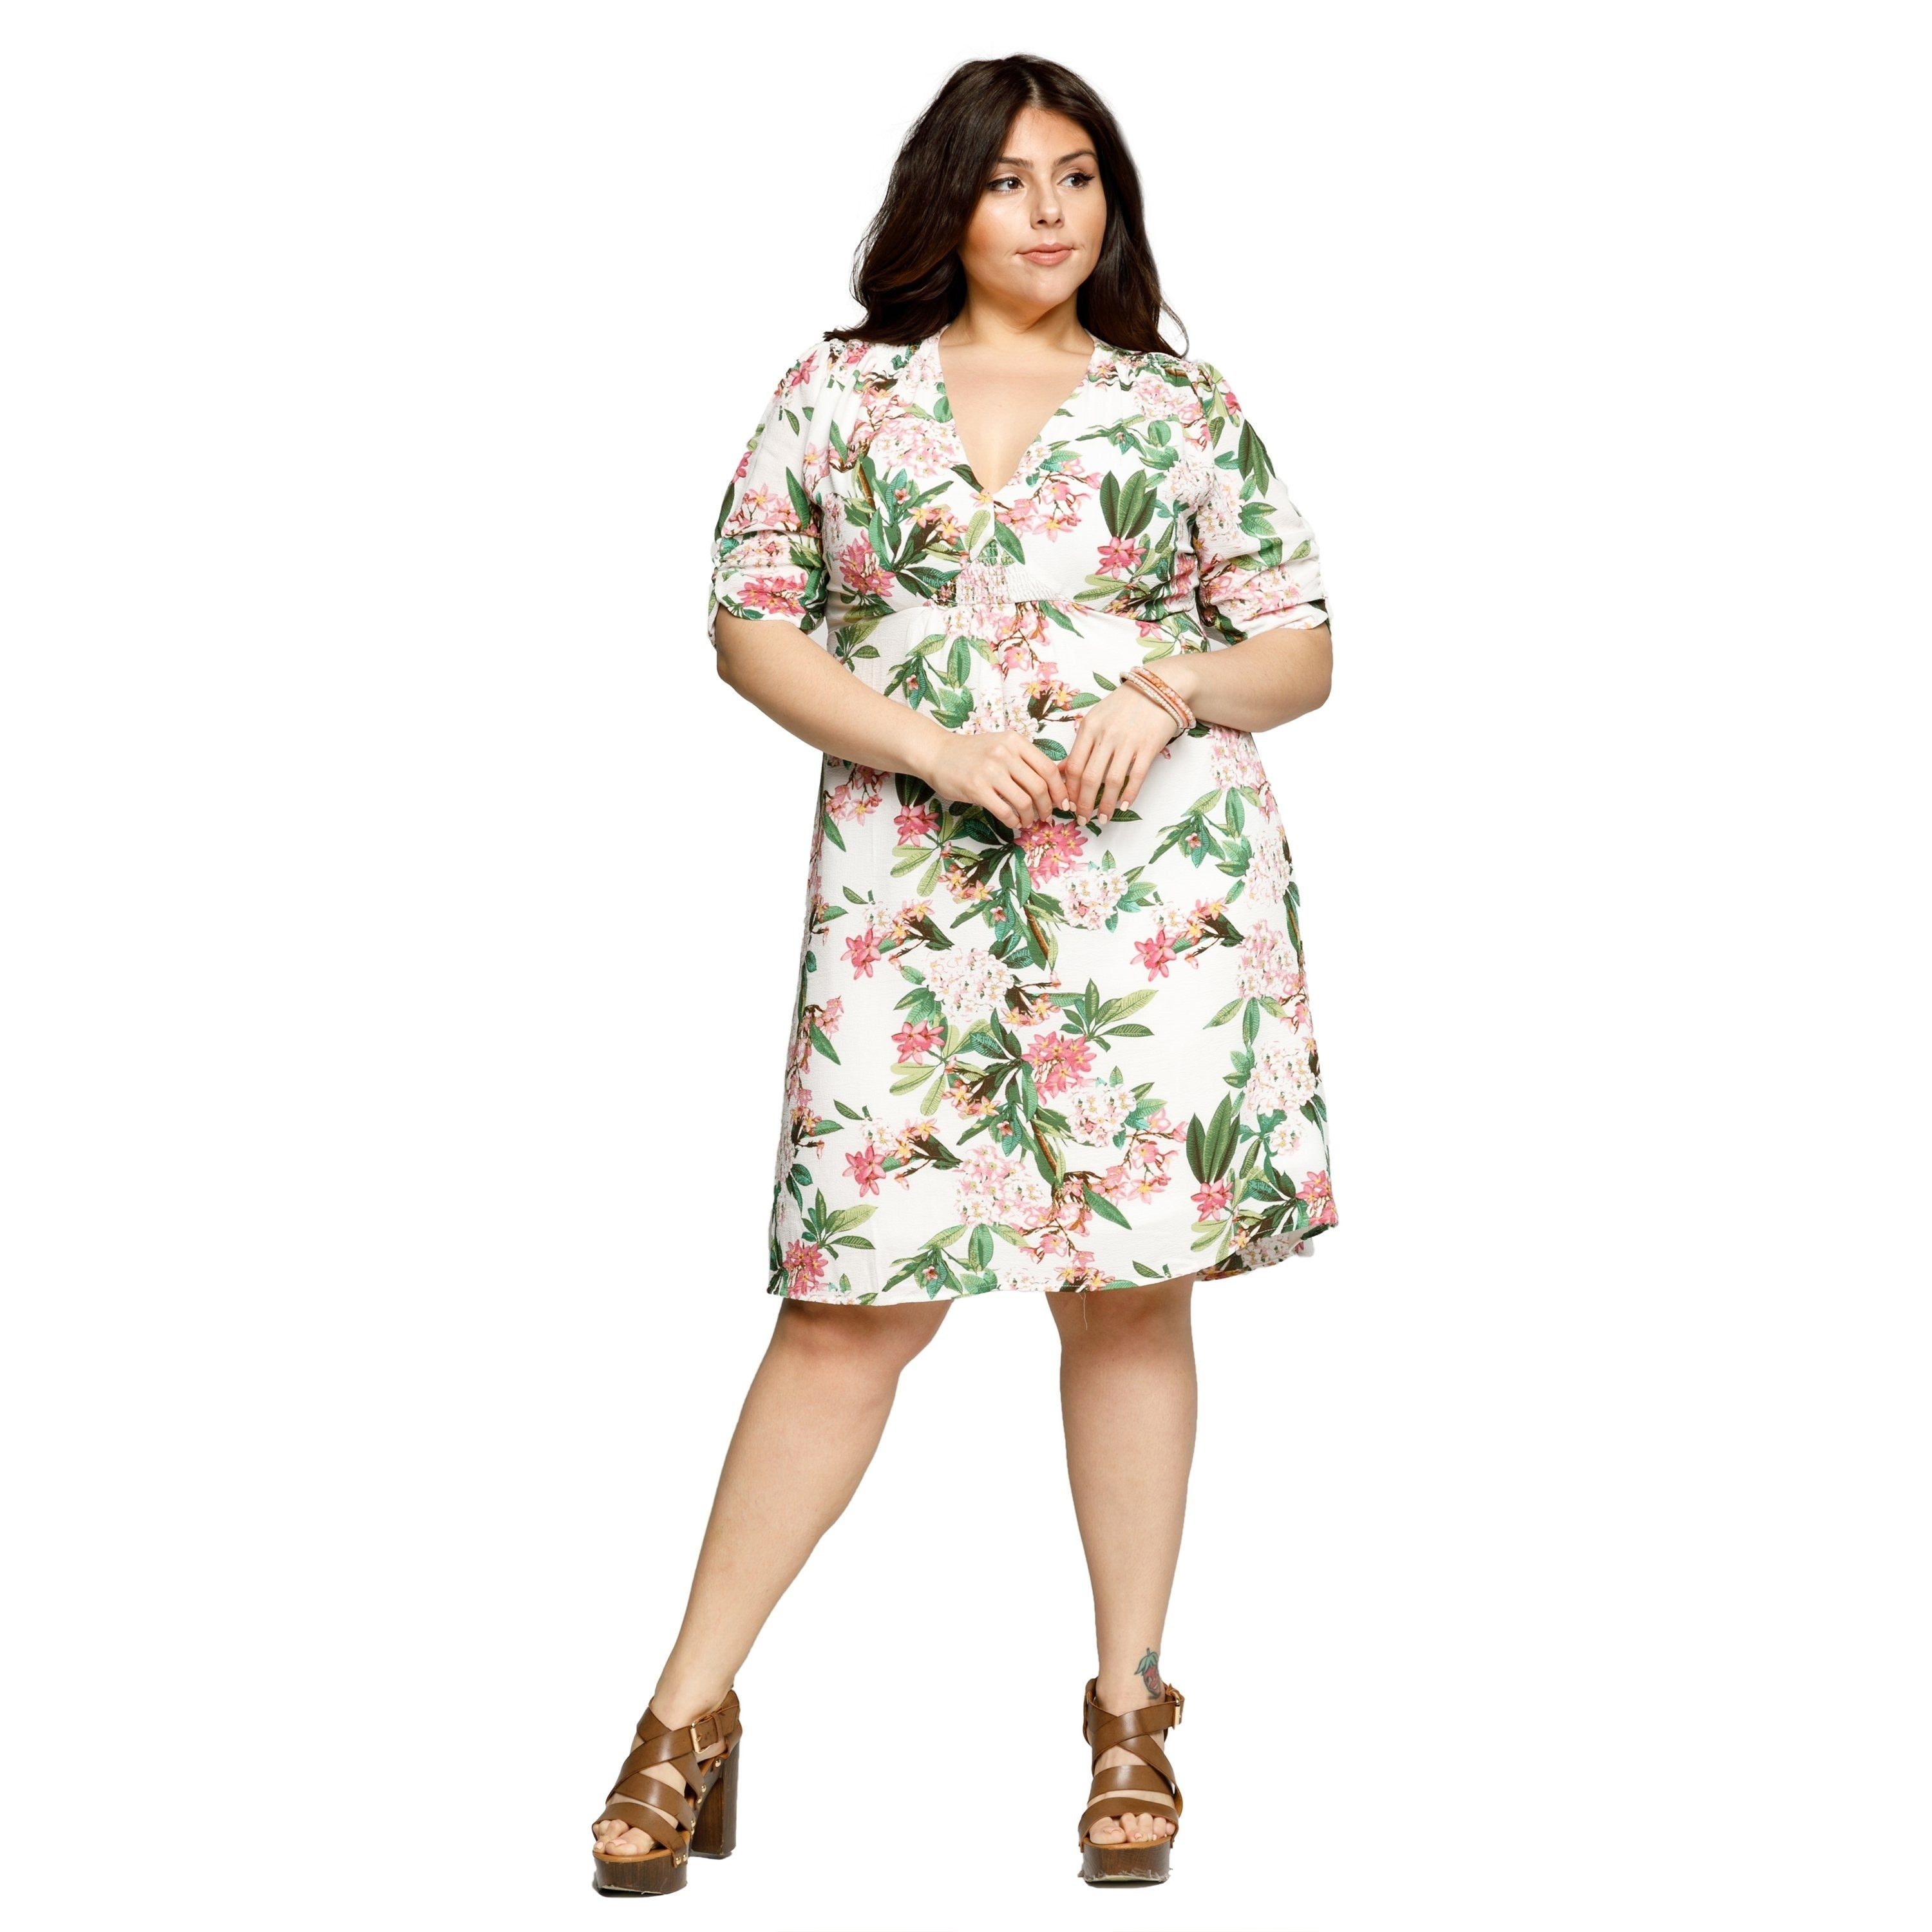 0ddd843d560 Shop Xehar Womens Plus Size Floral Summer Evening Party Short Mini Dress -  On Sale - Free Shipping On Orders Over  45 - Overstock.com - 20169423